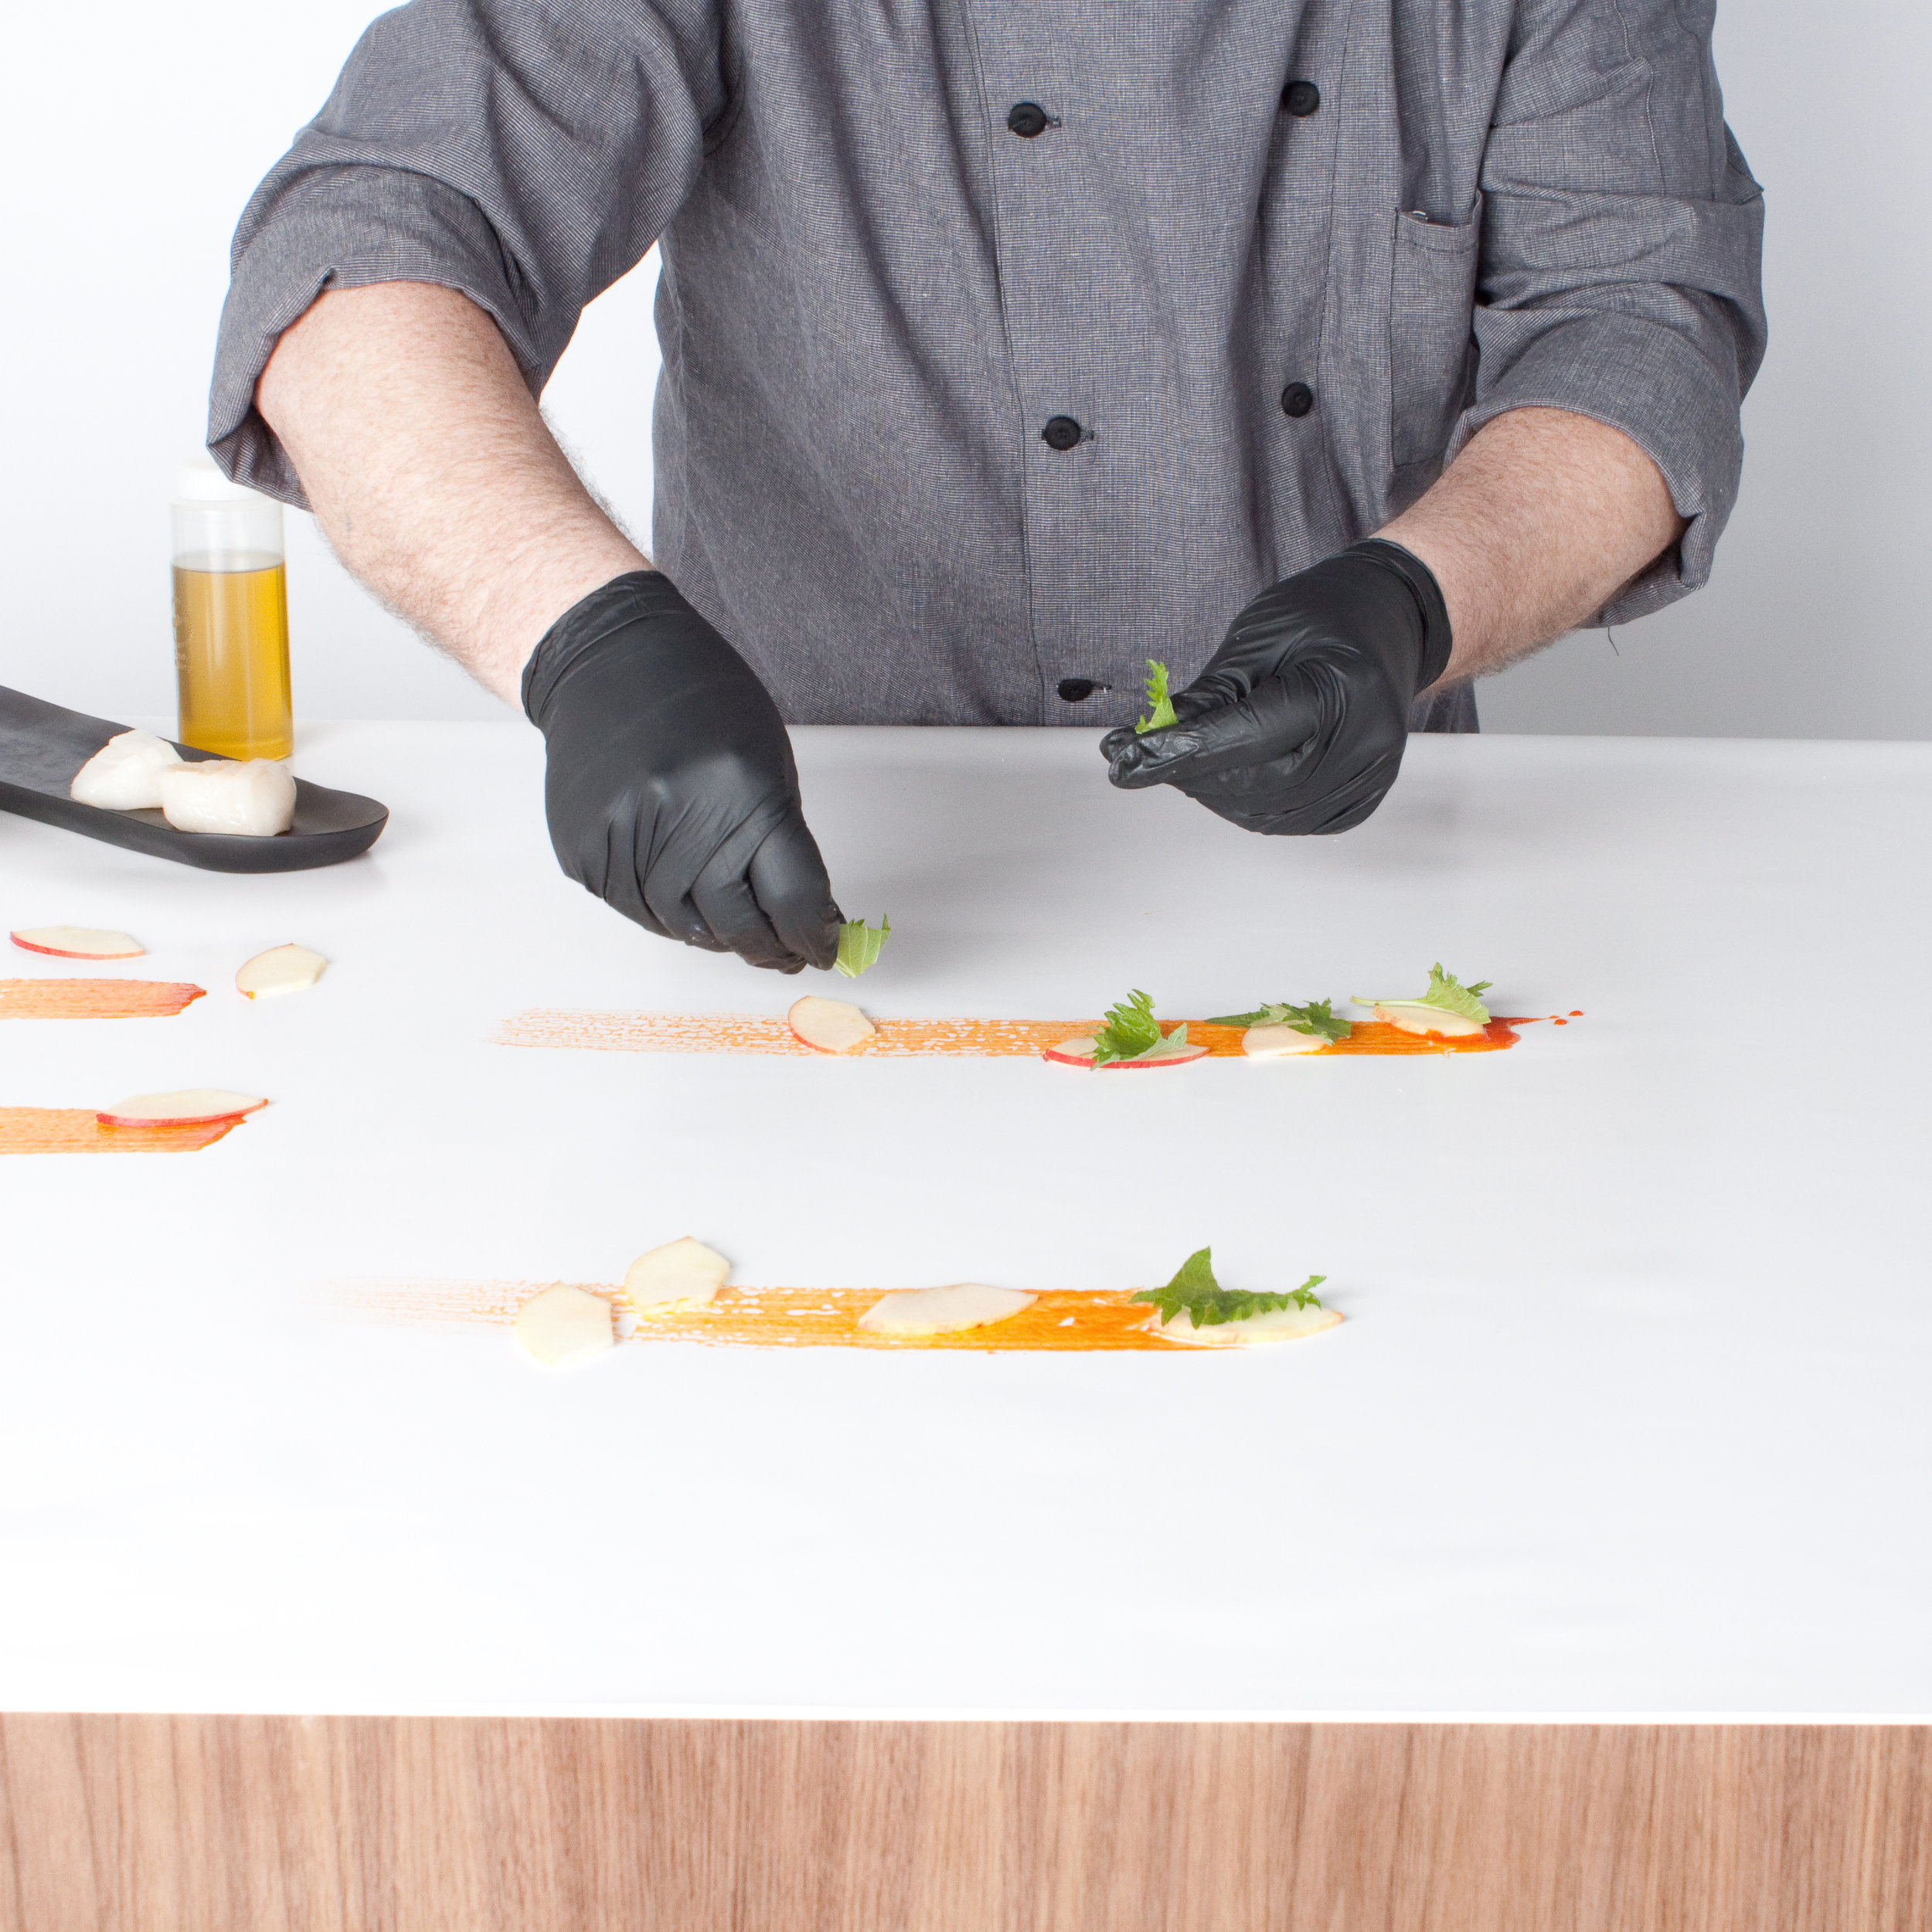 chef's ta•ble   1. A quiet demo in which the chef assembles, seasons, slices and stacks bites of food live at an event, in full view of the guests.  2. An engaging presentation that brings the kitchen out to the party.